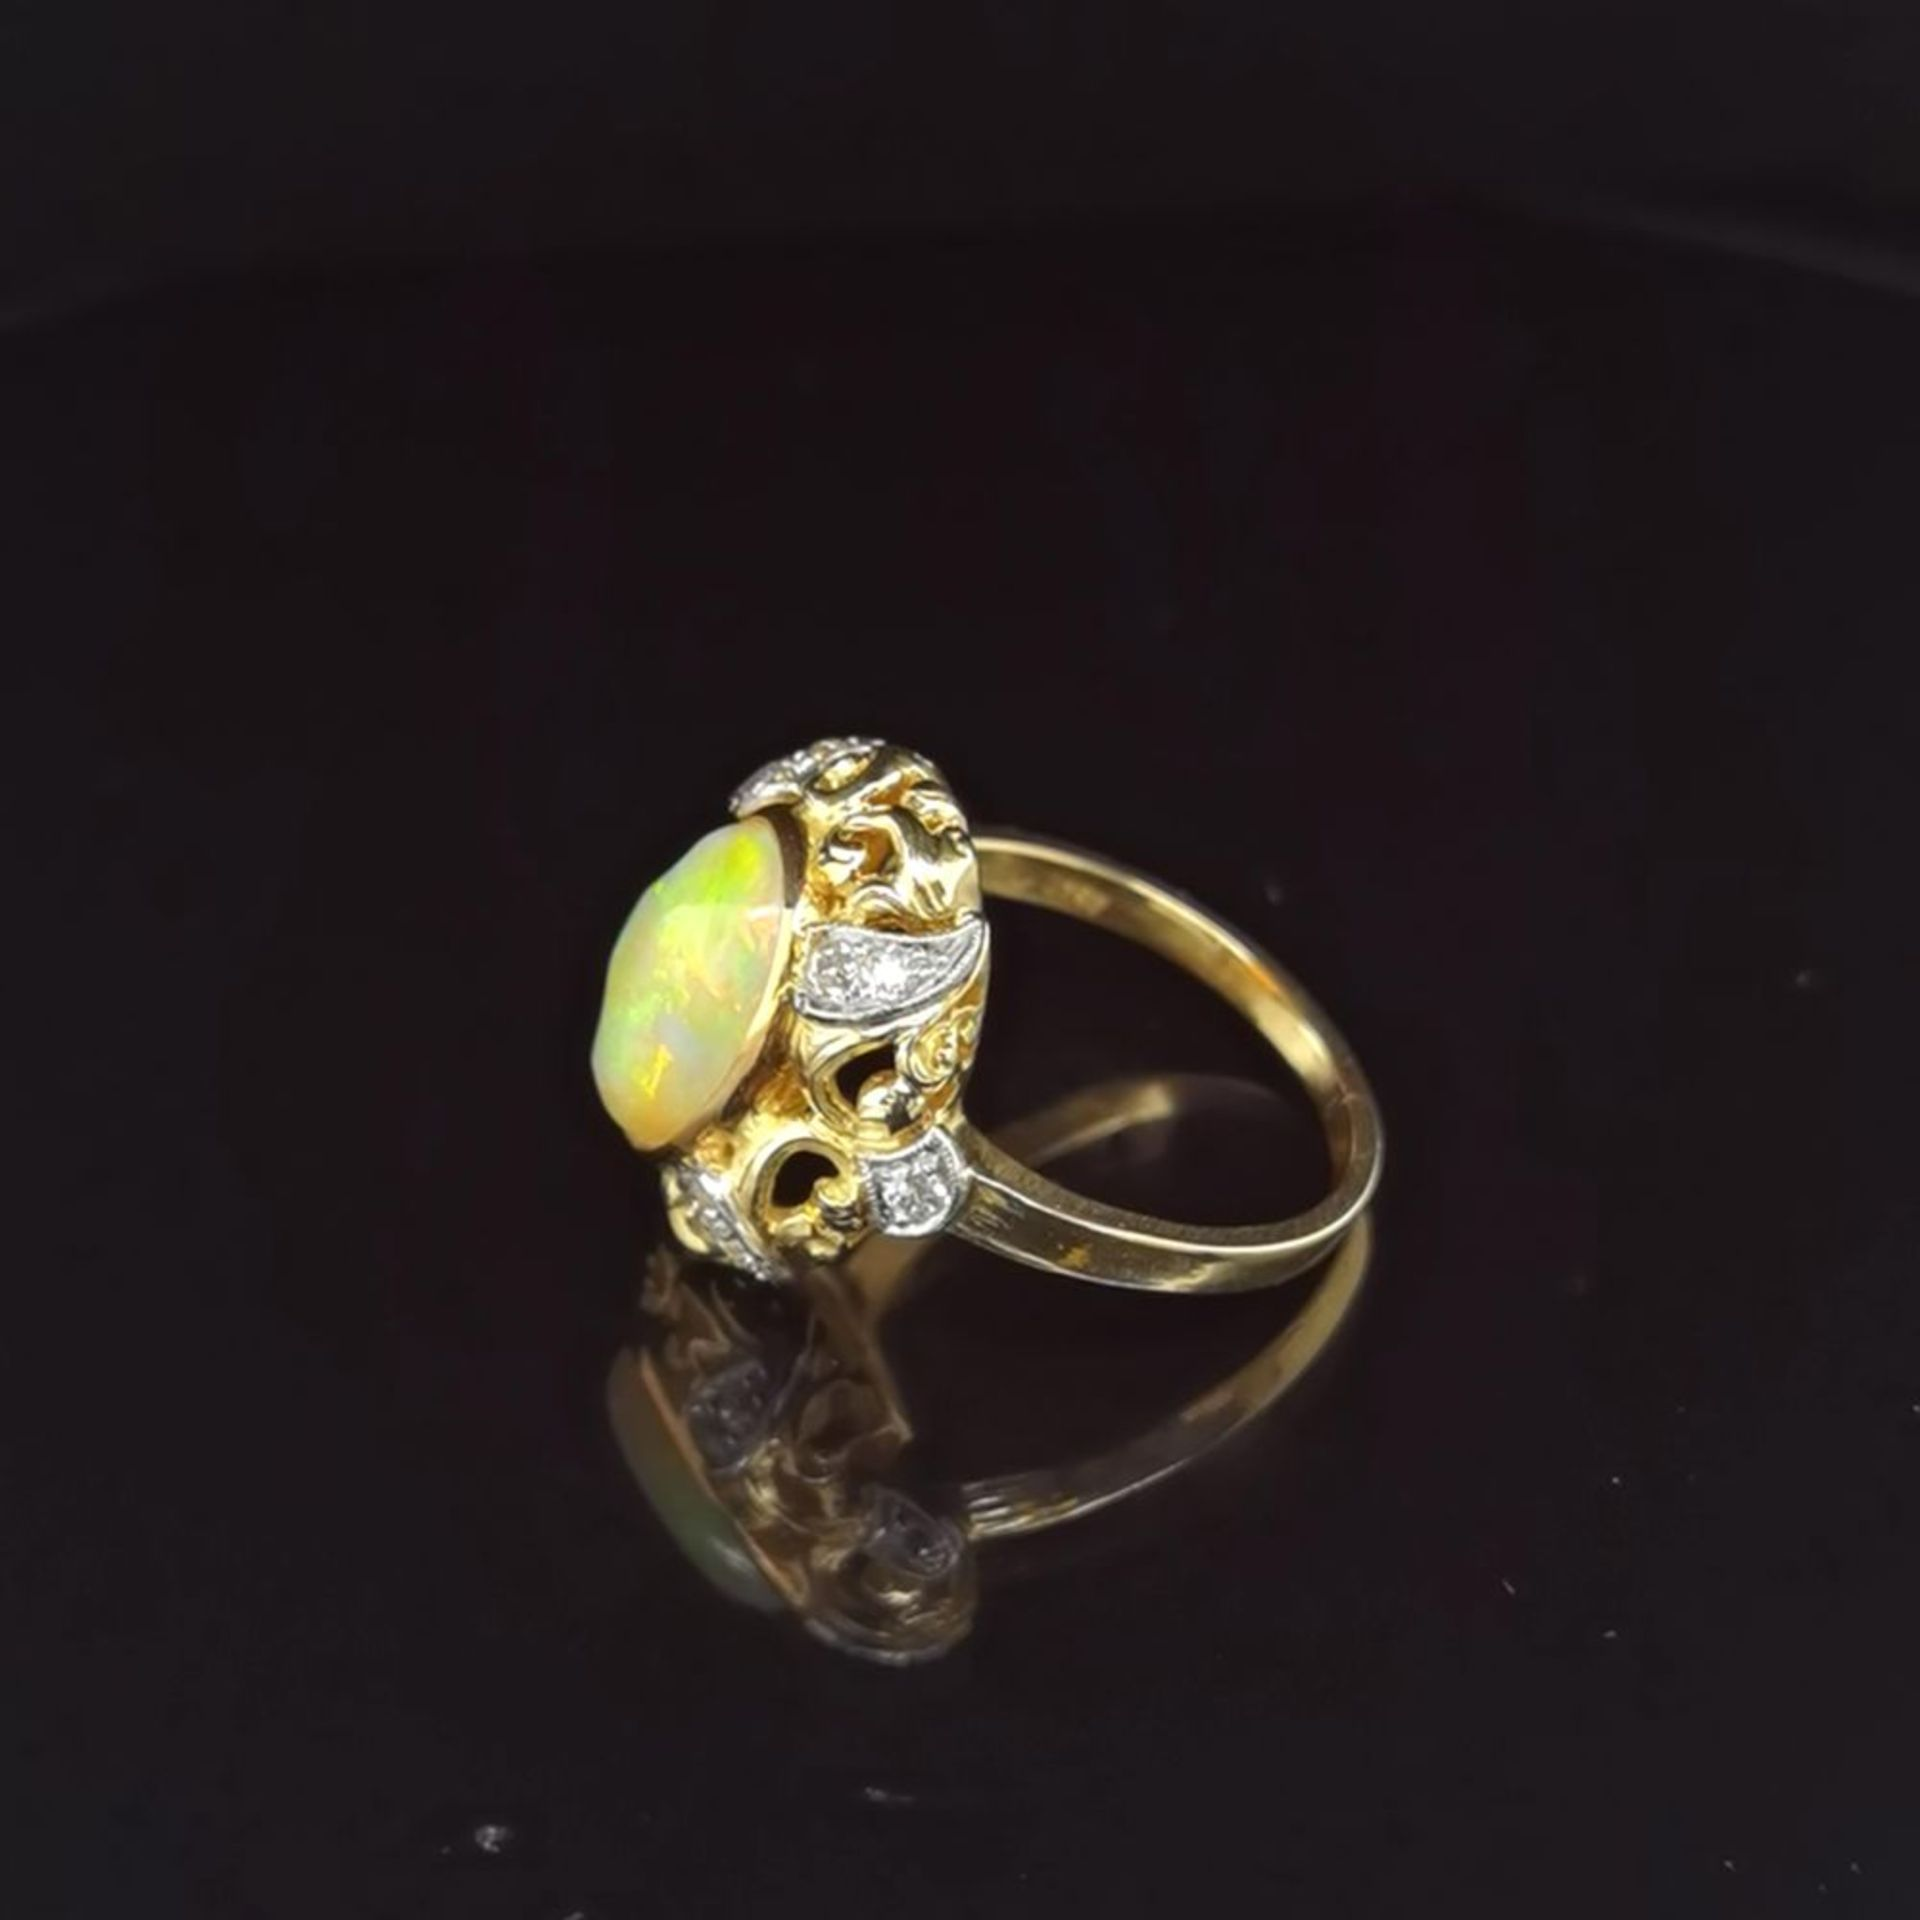 Opal-Brillant-Ring, 750 Gelbgold 7,5 - Image 2 of 3